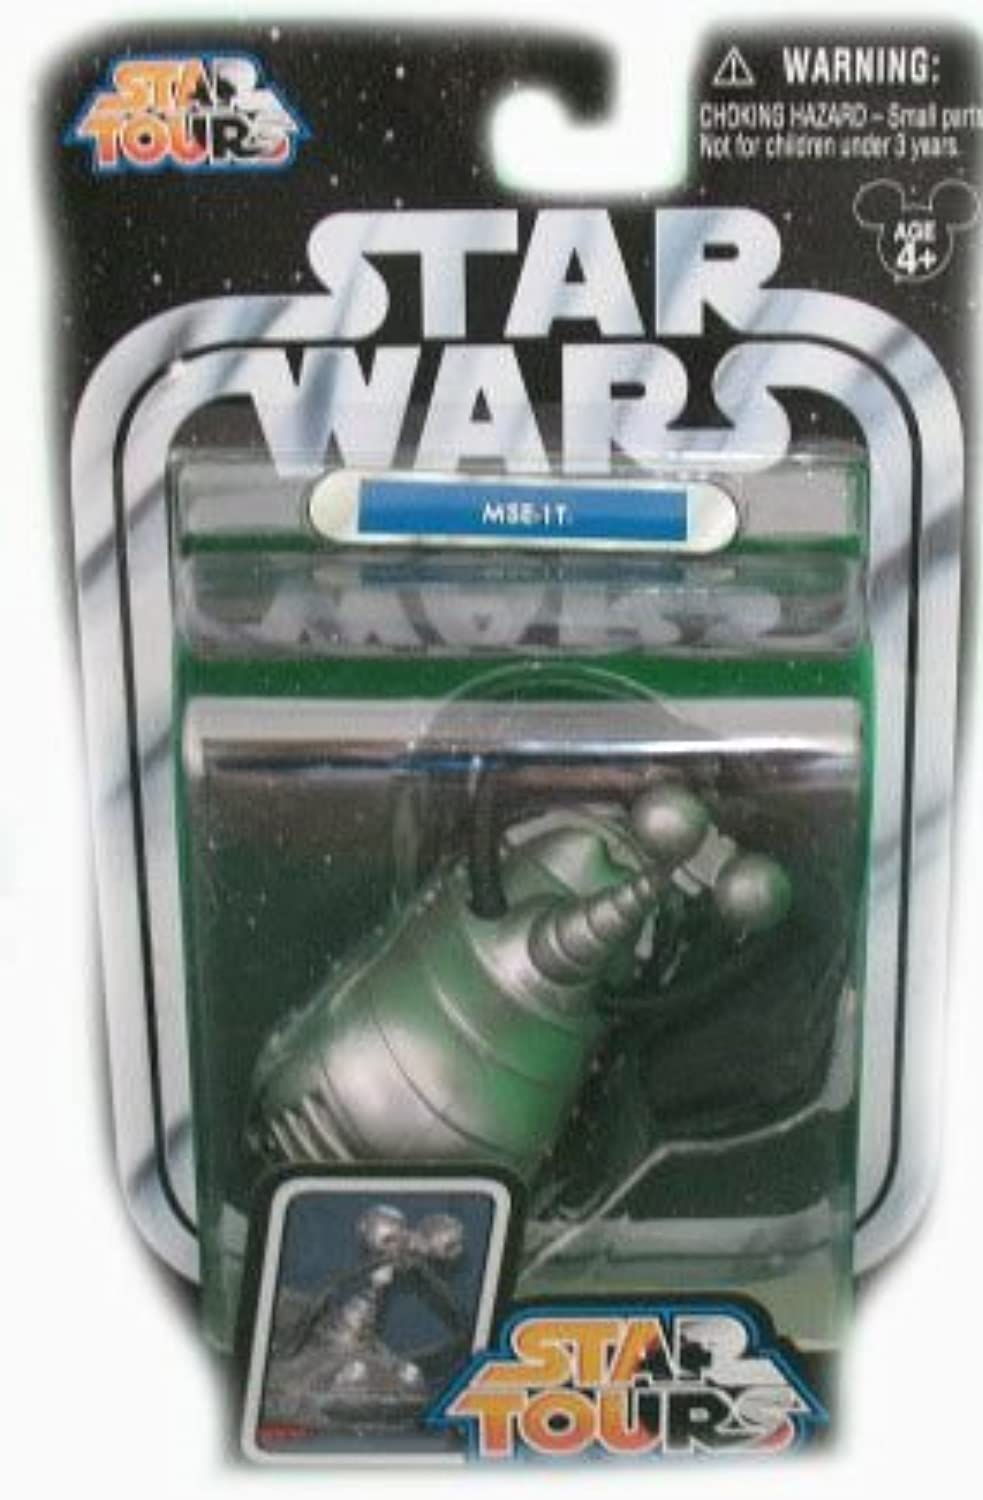 Star Wars Star Tours MSE1T Droid Action Figure by Star Wars